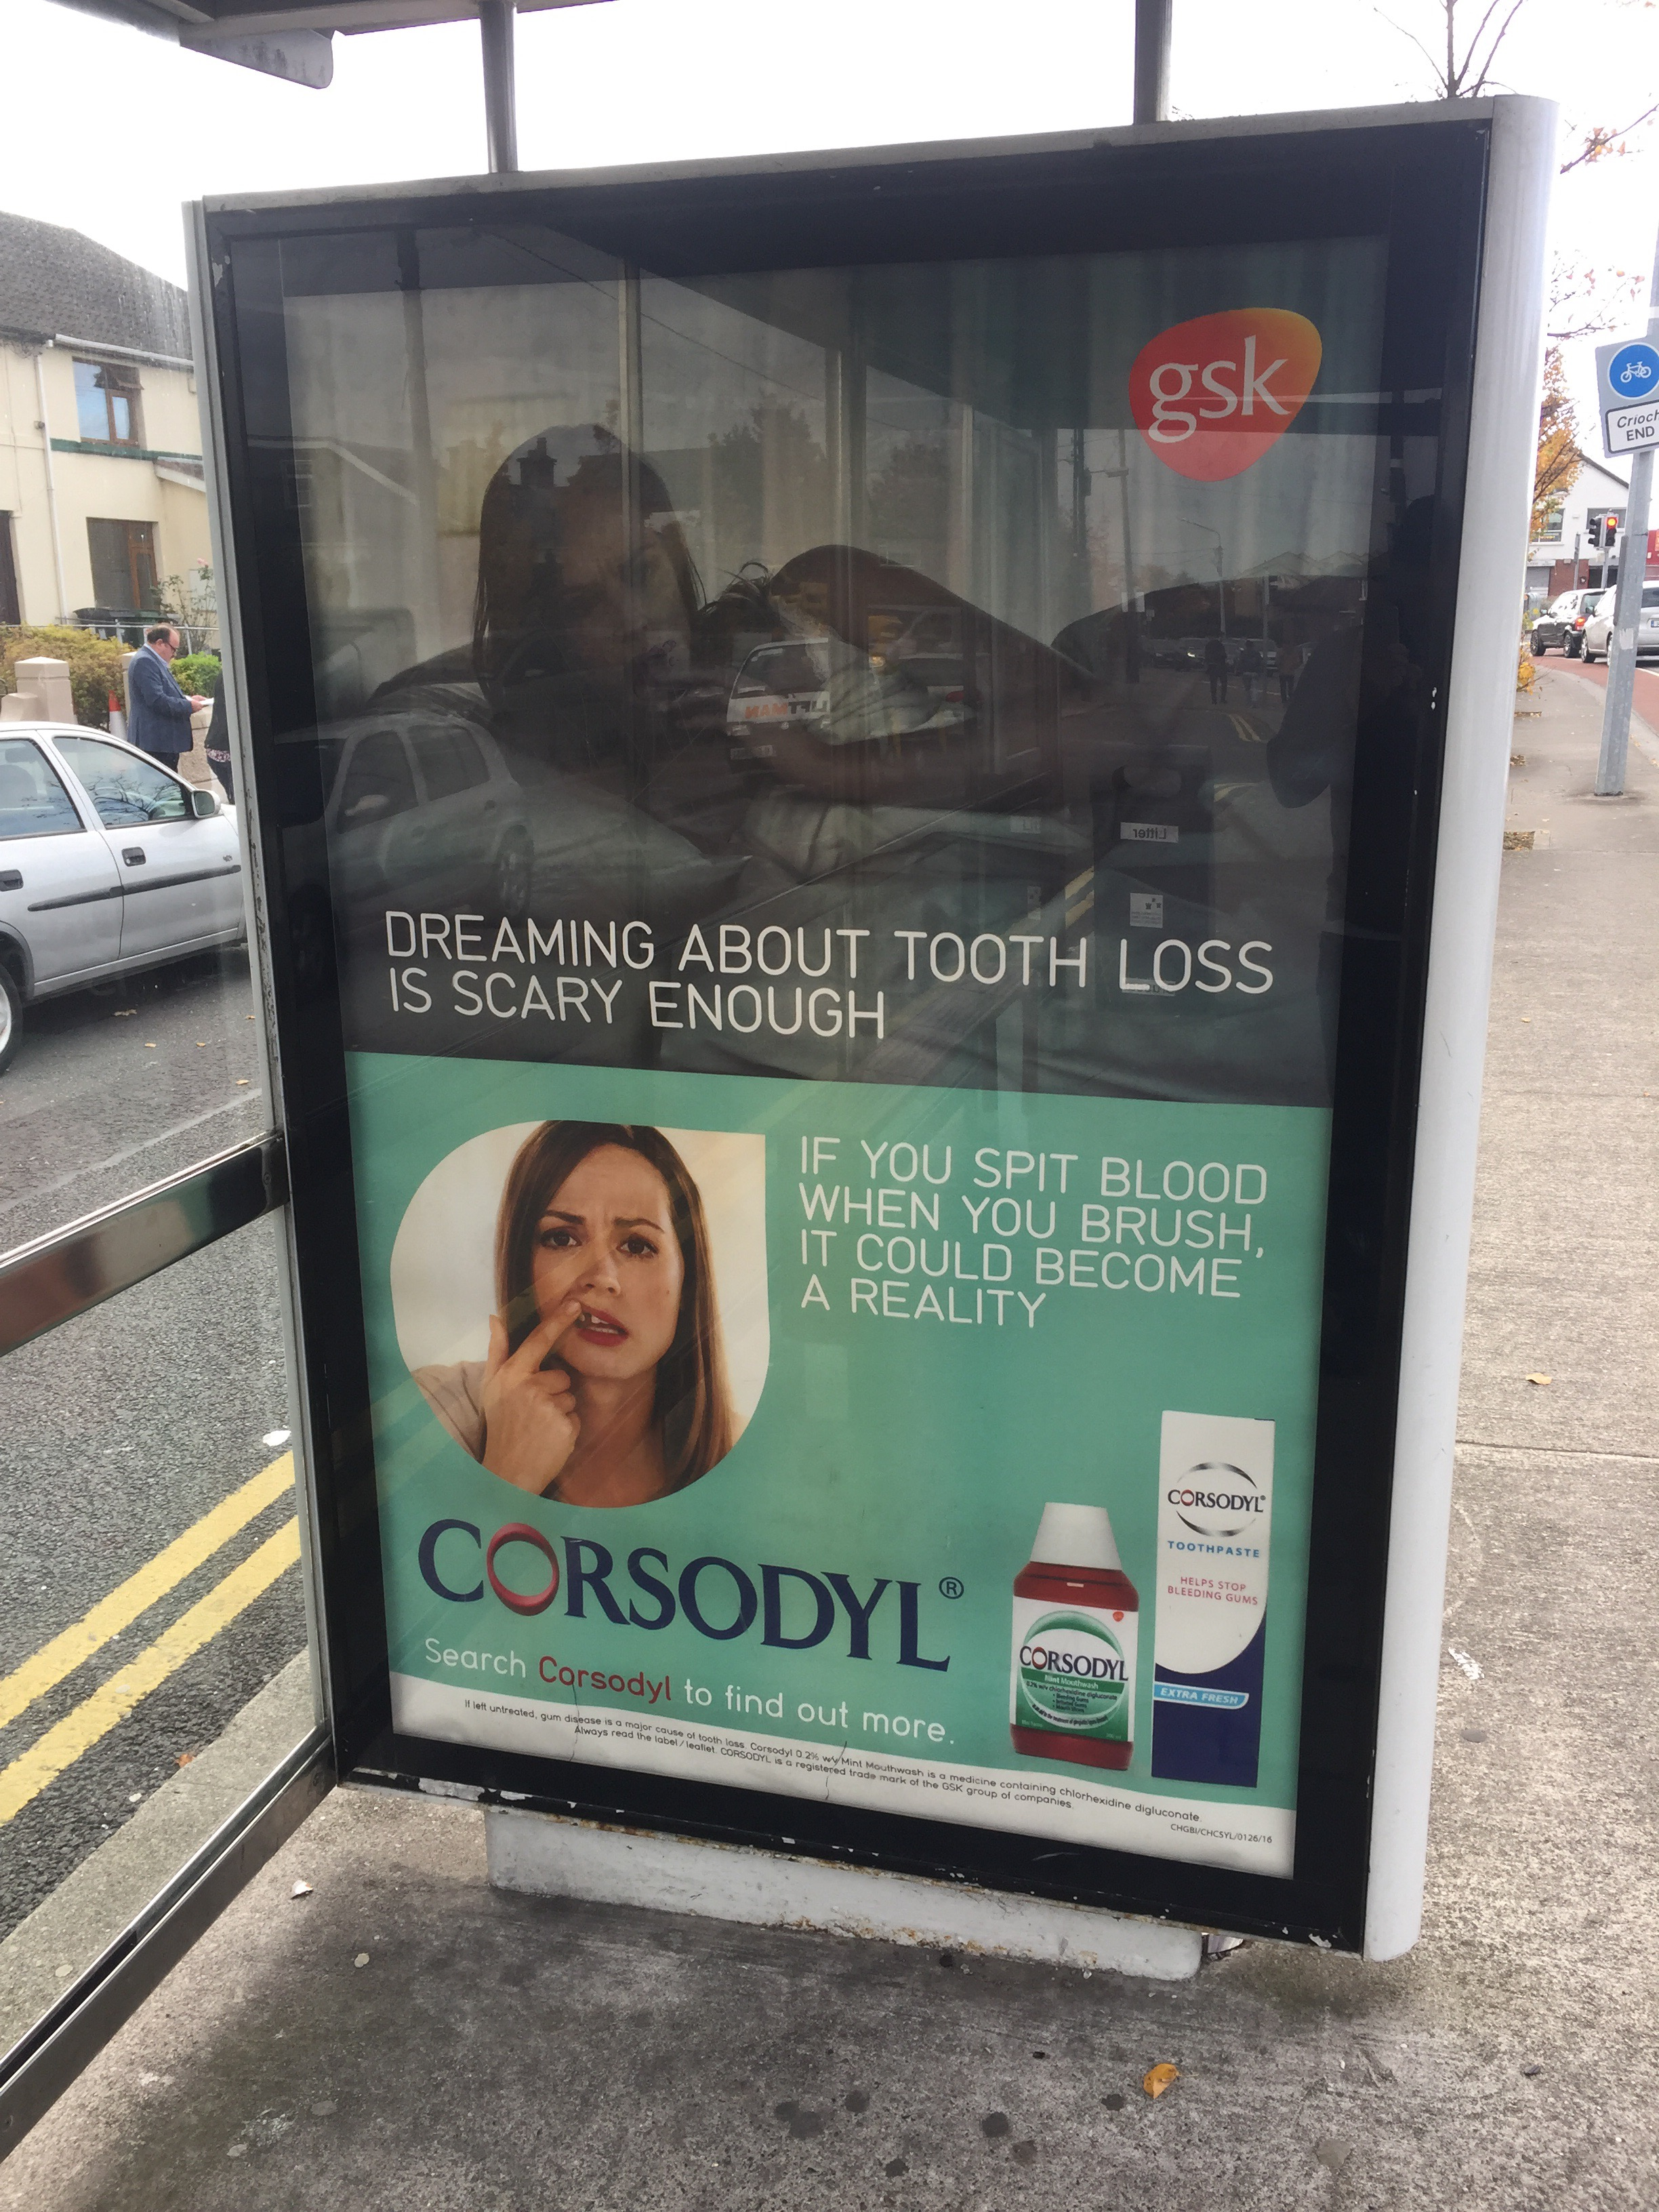 GSK- Corsodyl – Dreaming about tooth loss is scary enough